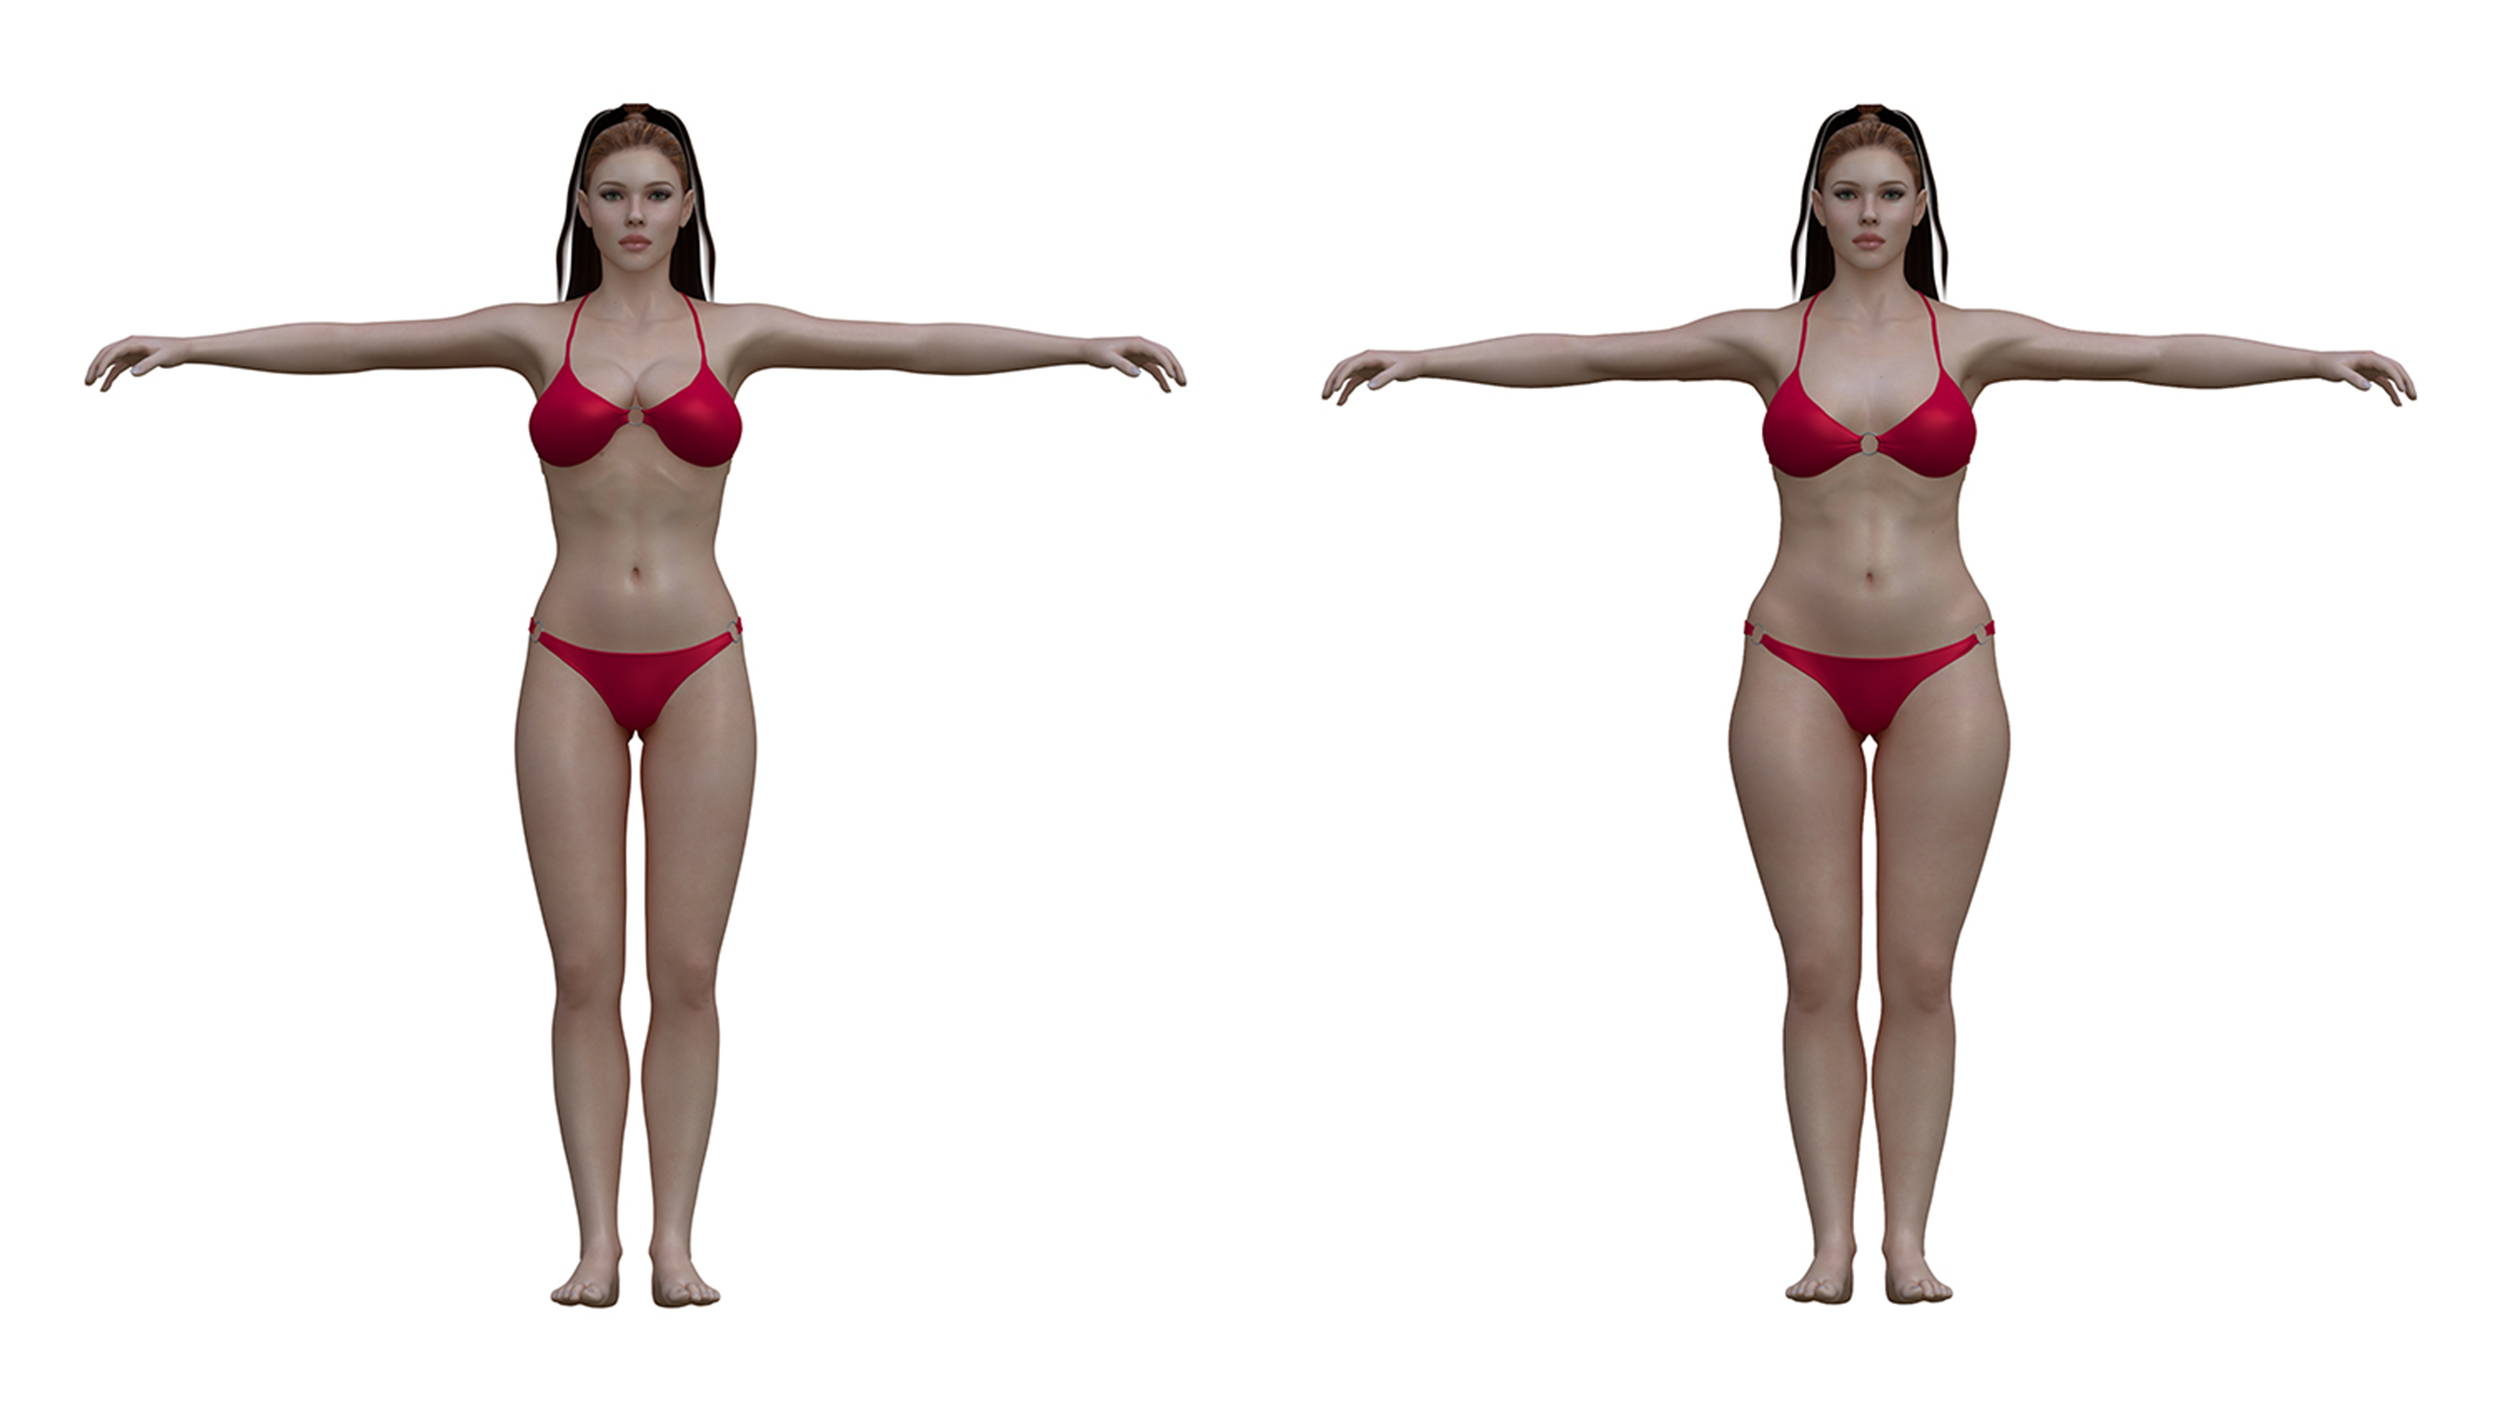 Eating Disorders and Ideal Body Weight